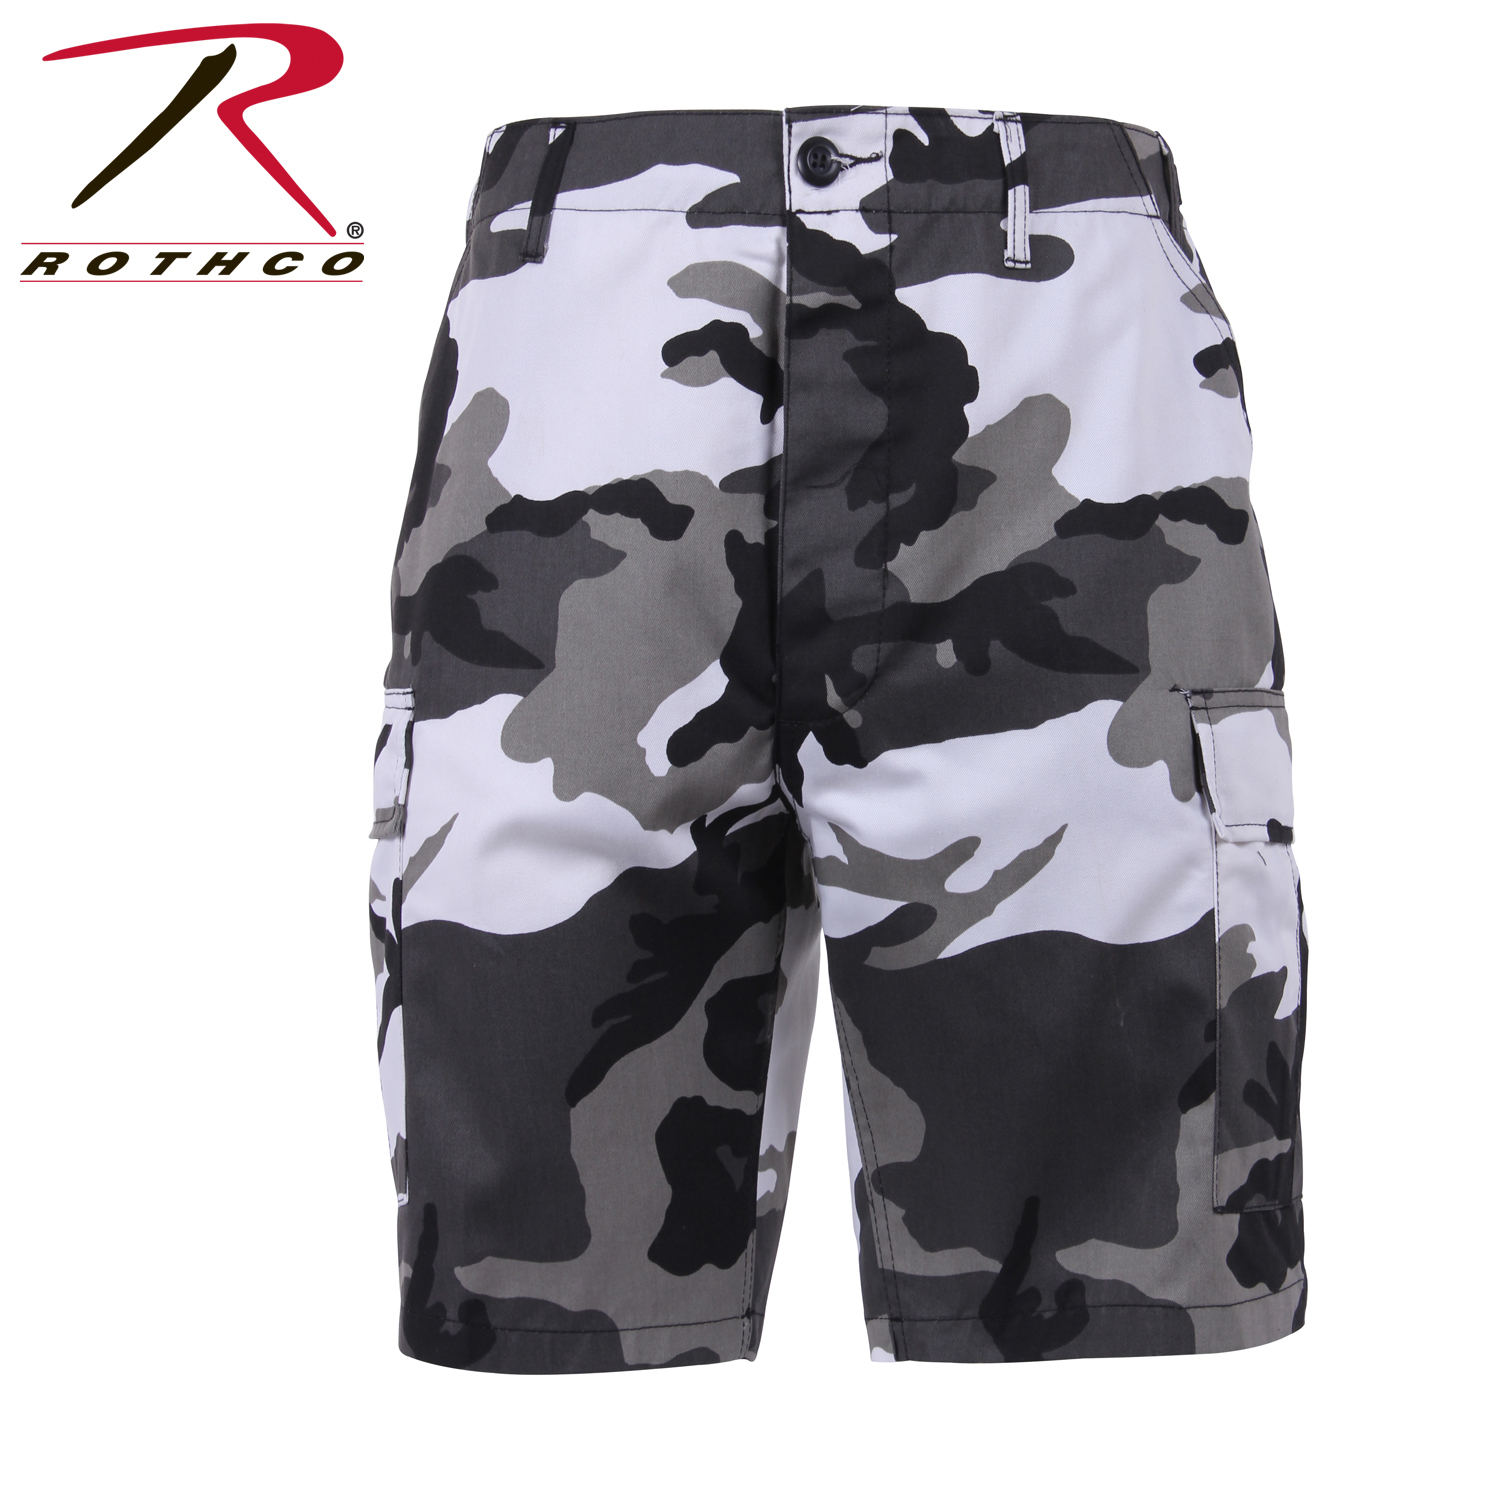 693b6ce33a ... Rothco camo bdu shorts, colored. Loading zoom